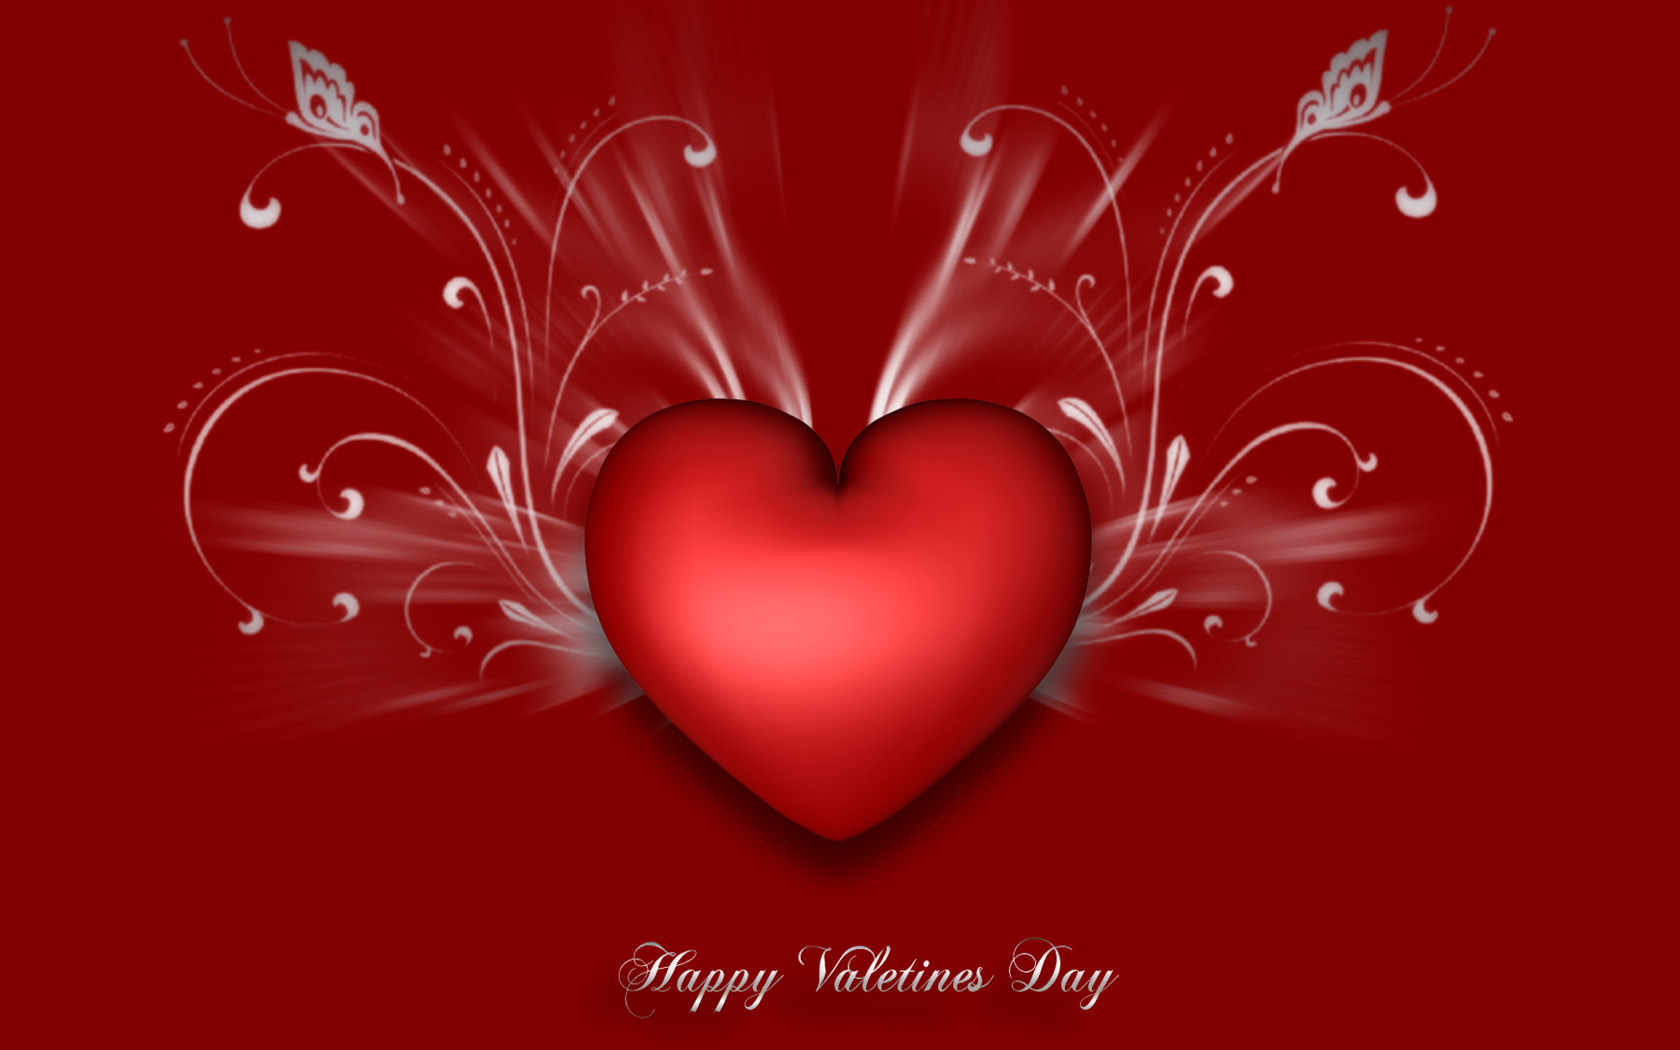 happy valentines day wallpapers - Happy Valentines Day Photos